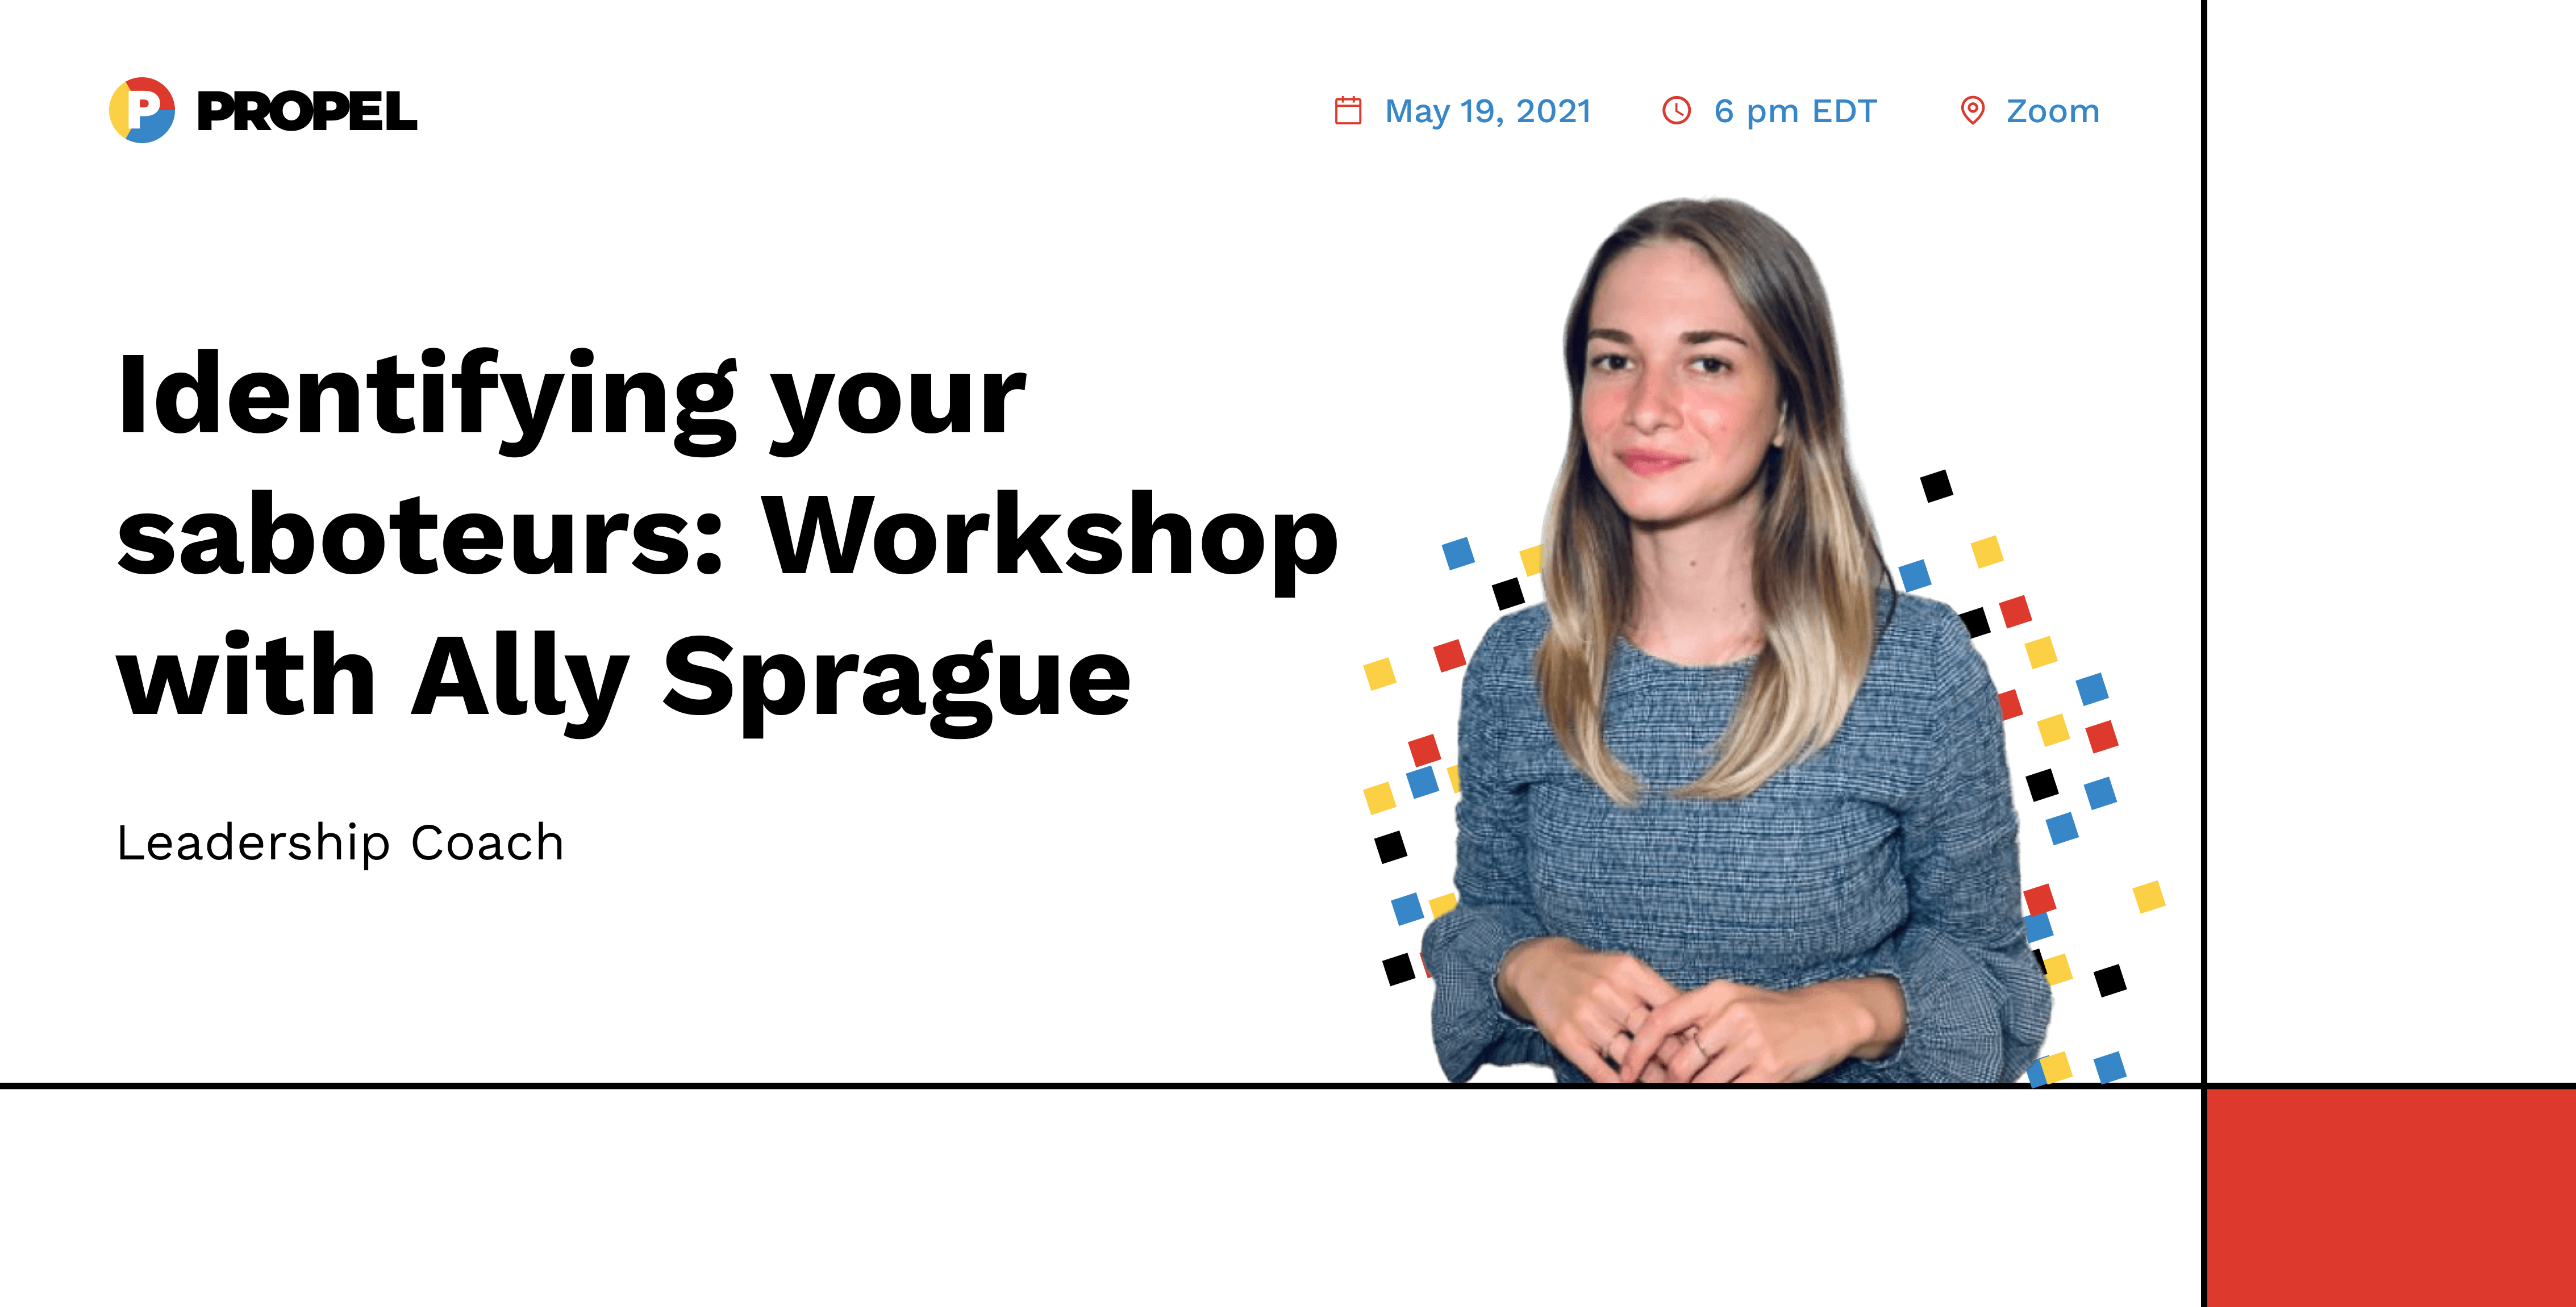 Identifying your saboteurs: Workshop with Leadership Coach Ally Sprague